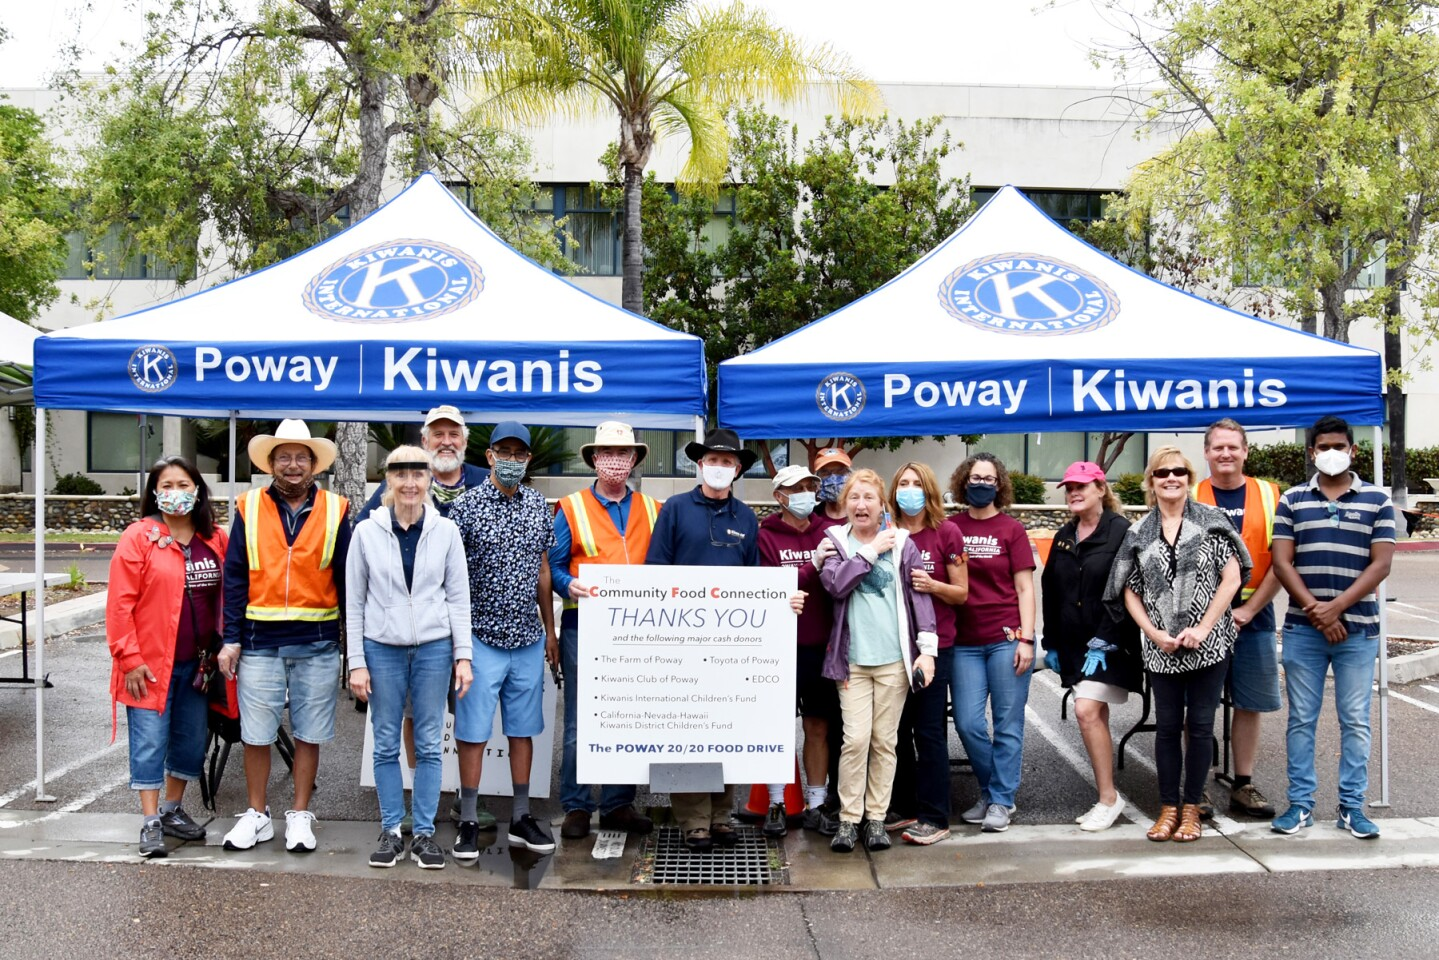 Poway Kiwanis members at the food drive. The members worked in shifts throughout the morning to gather donations.